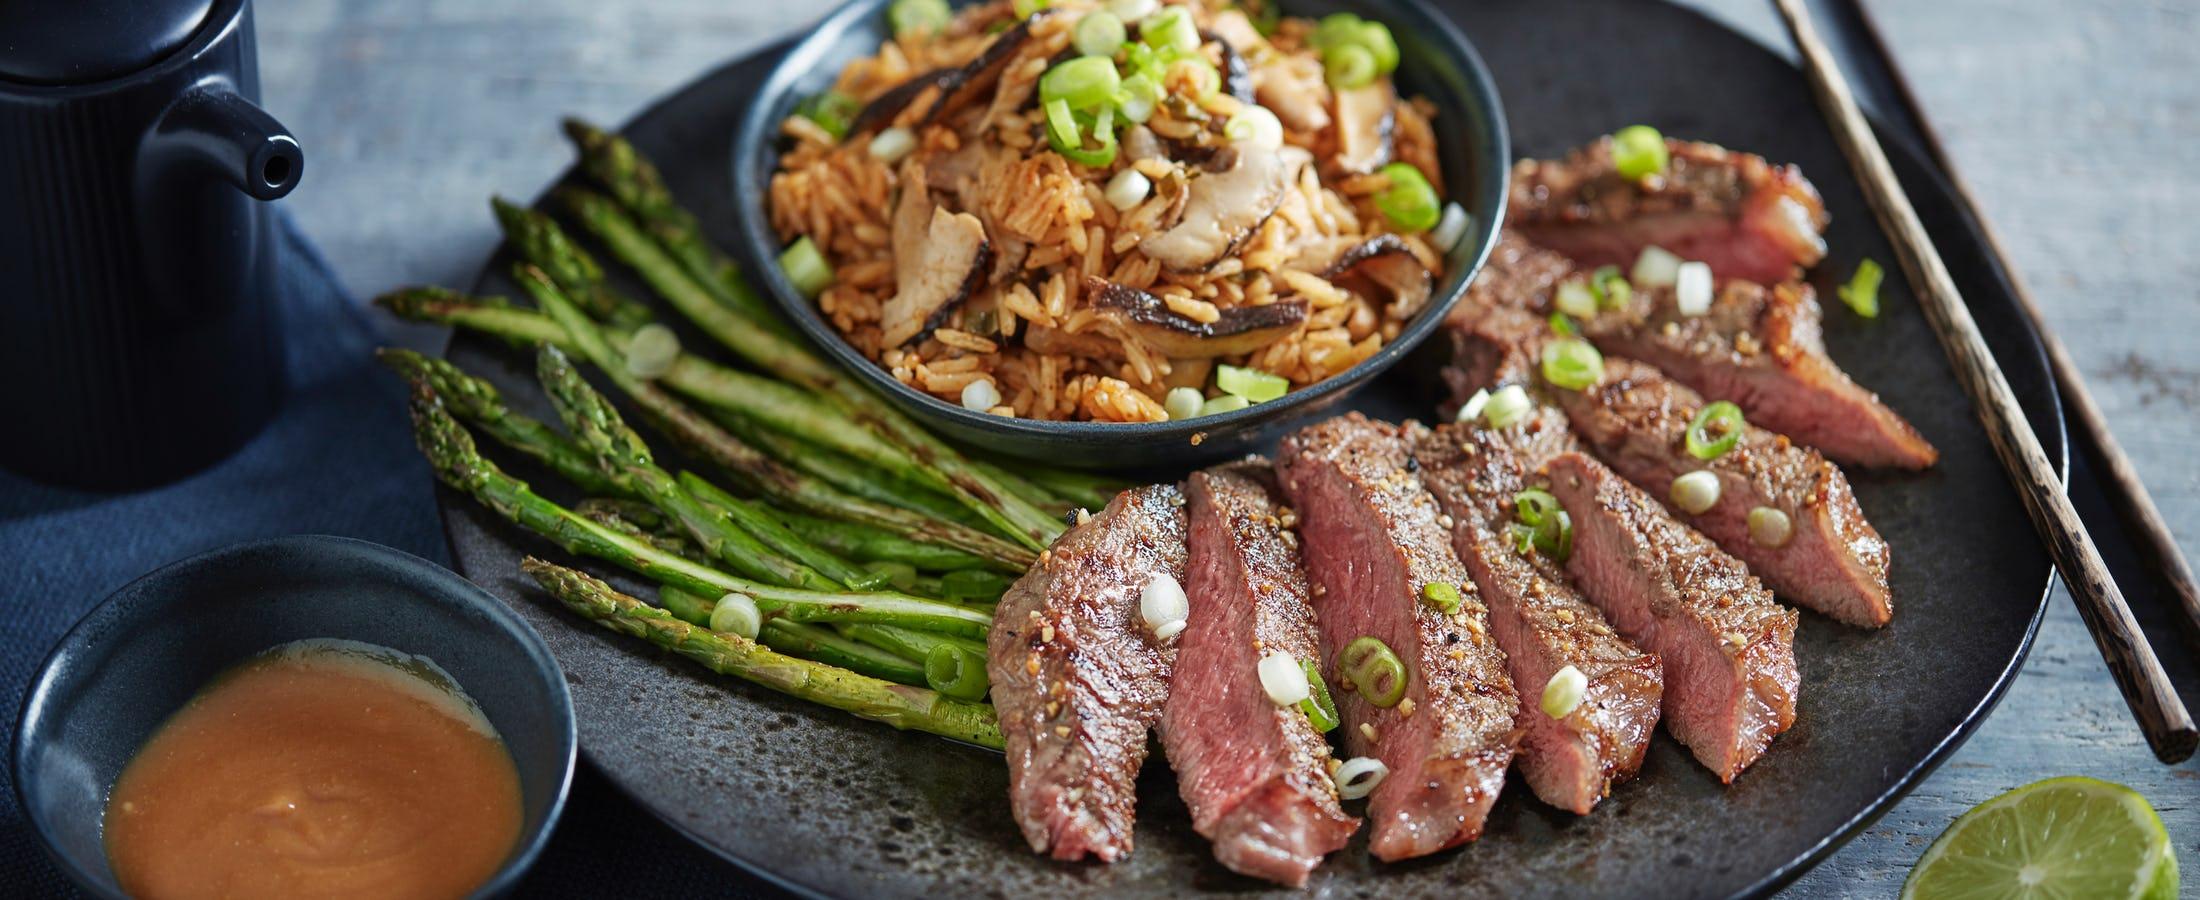 Japanese Seared Steak